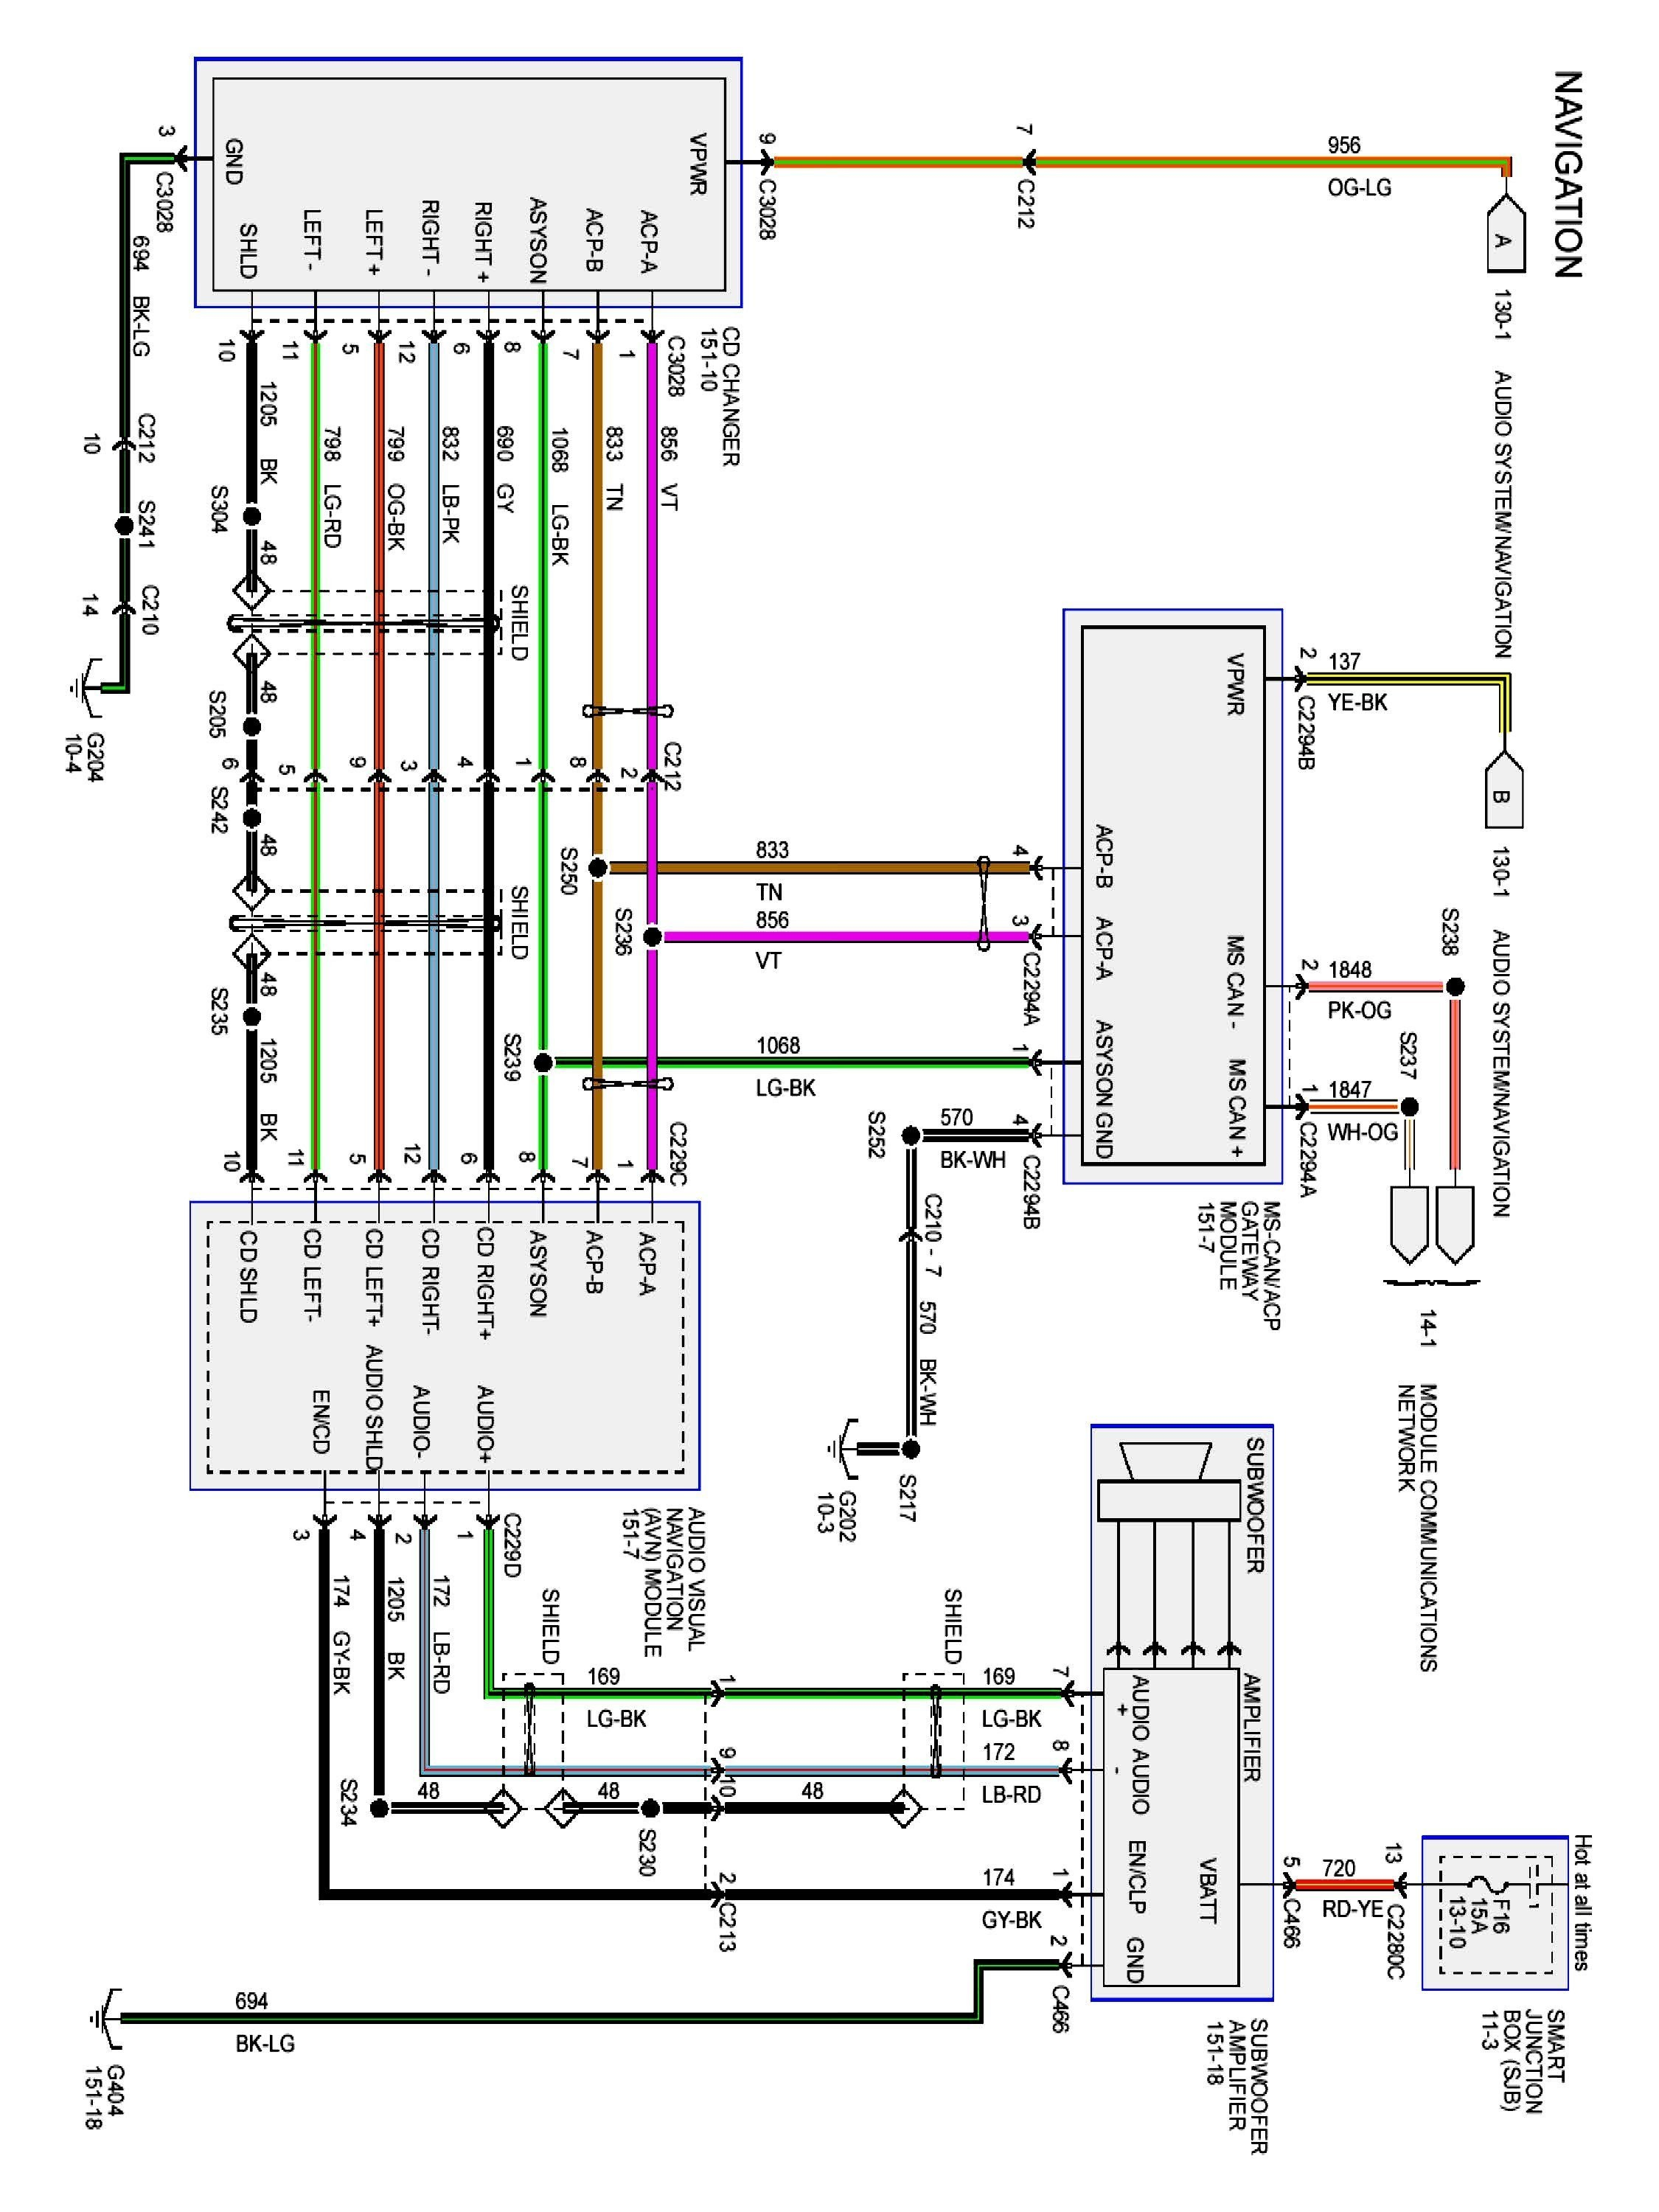 2012 ford Focus Wiring Diagram Wiring Diagram 2012 ford Focus Pdf In Radio Of 2012 ford Focus Wiring Diagram